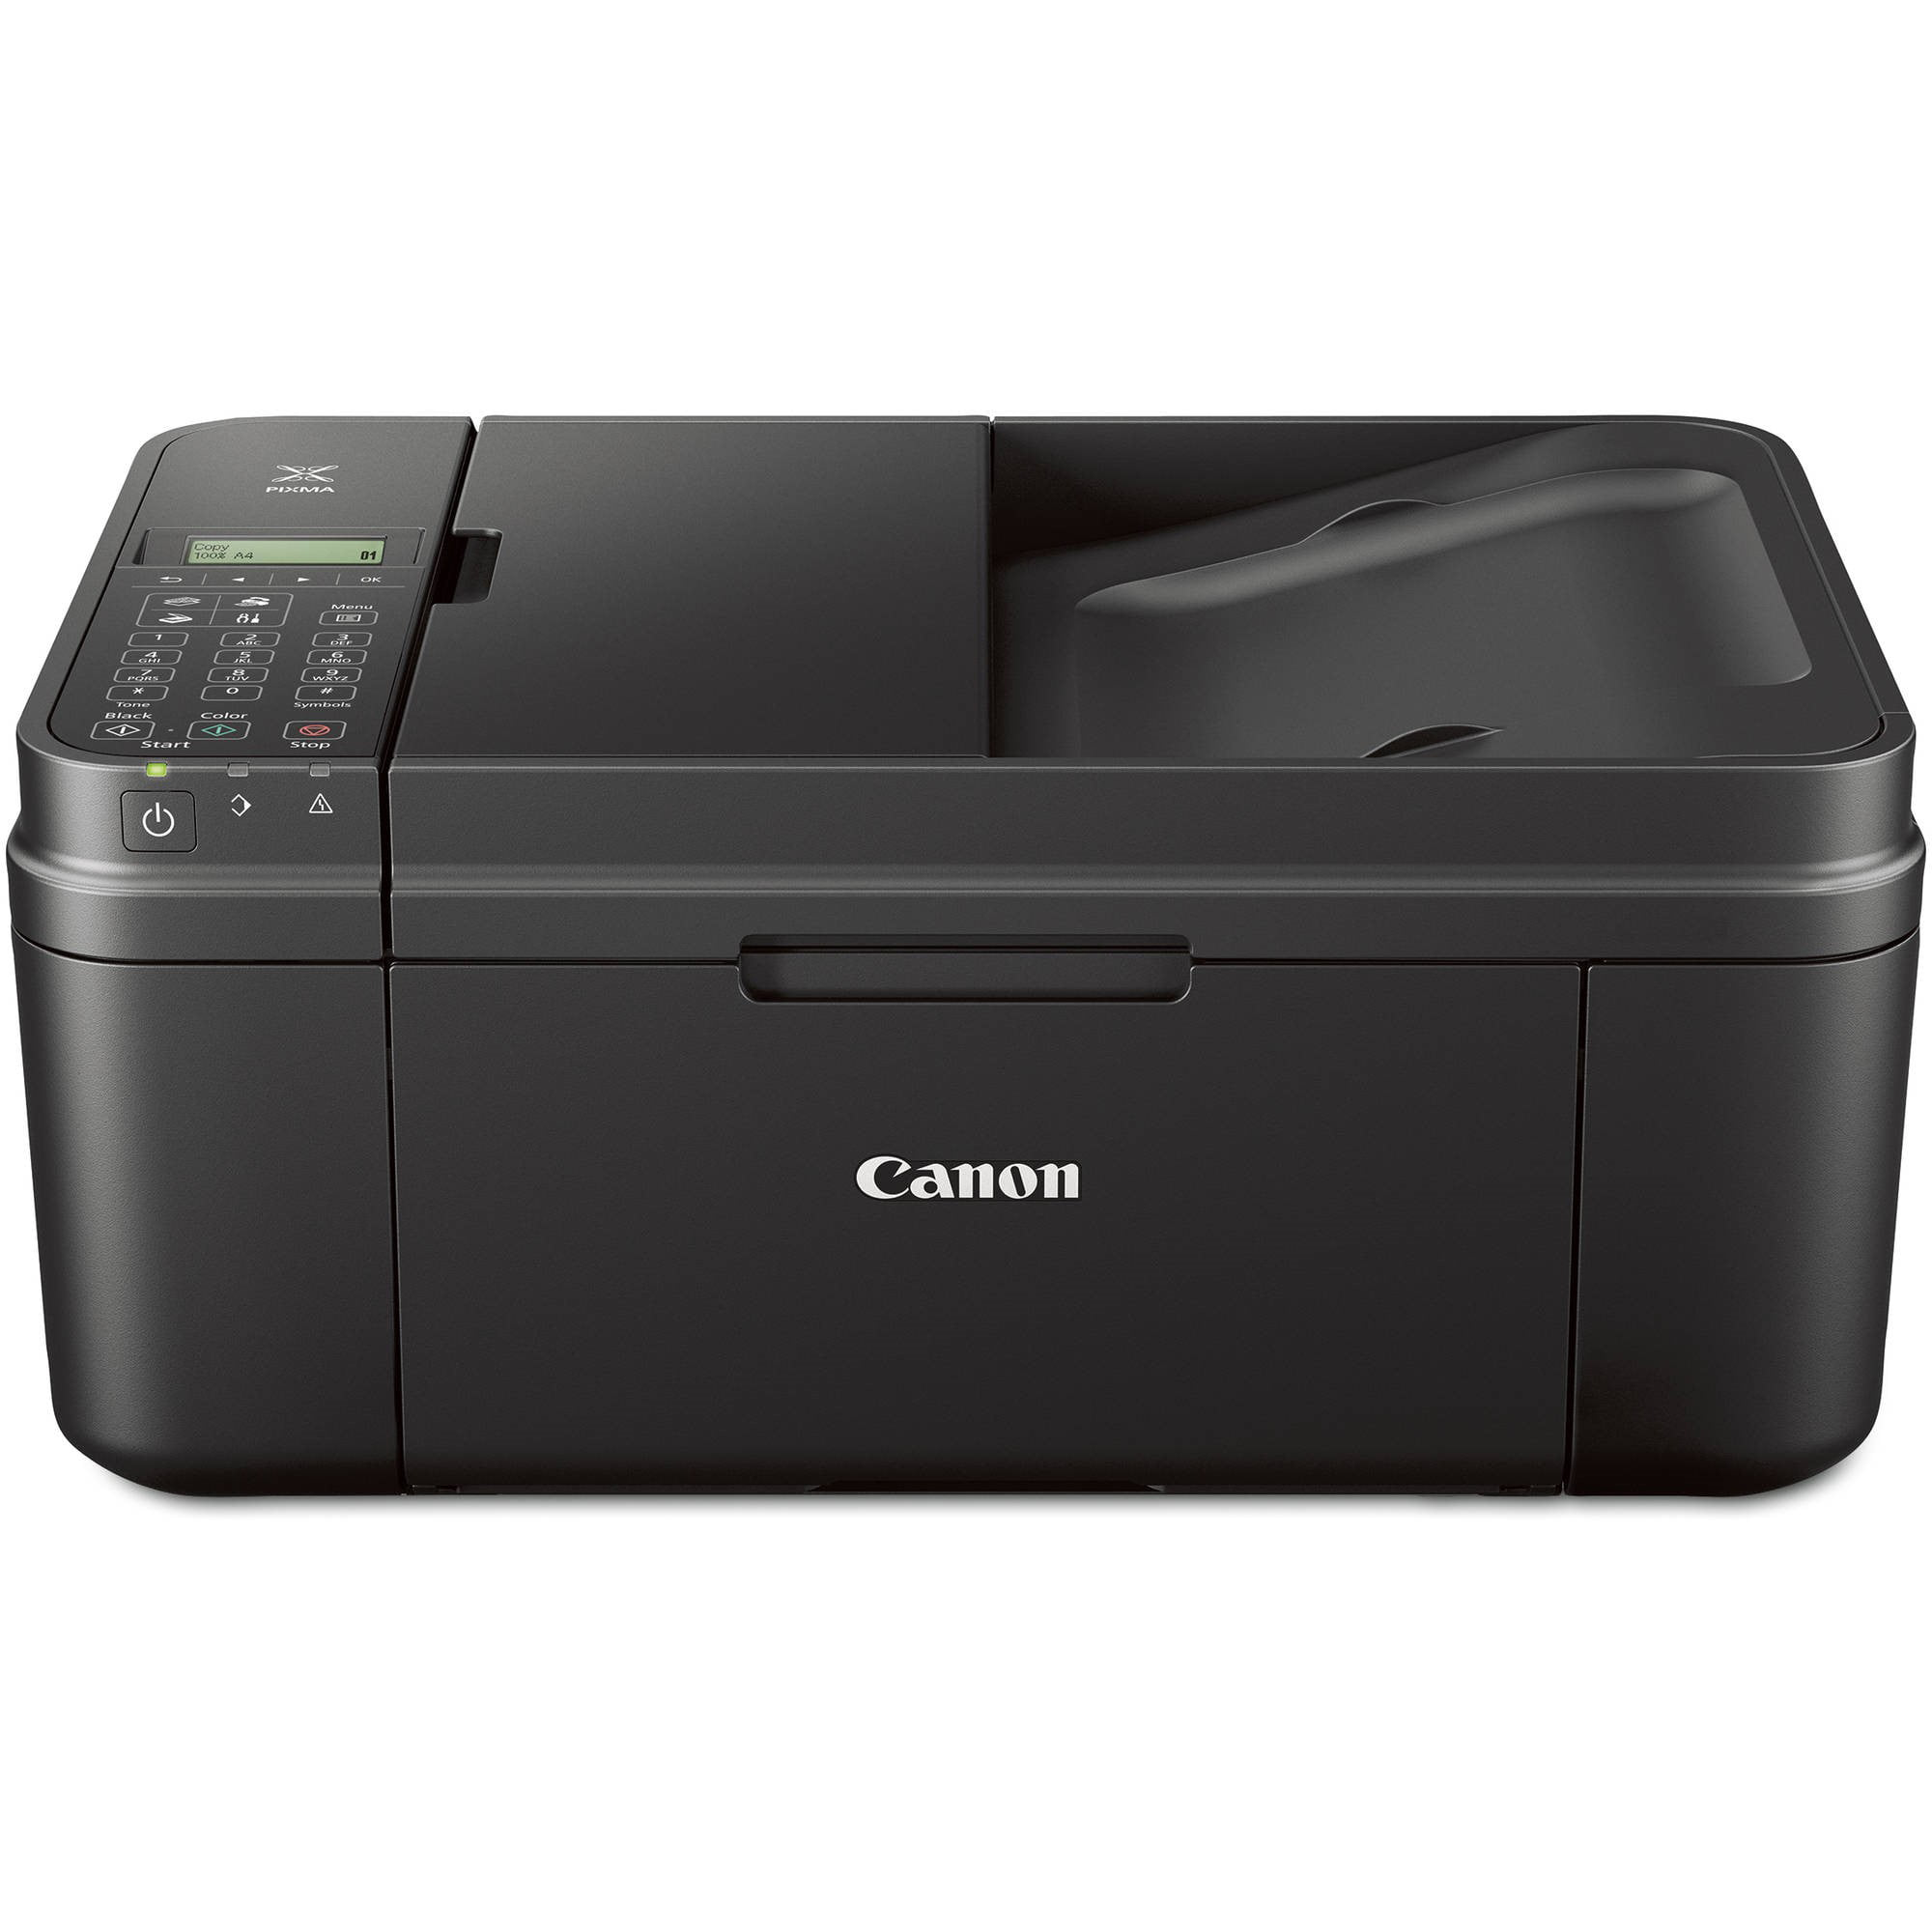 Canon PIXMA MX490 Wireless Office All-in-One Inkjet Printer Copier Scanner Fax Machine by Canon